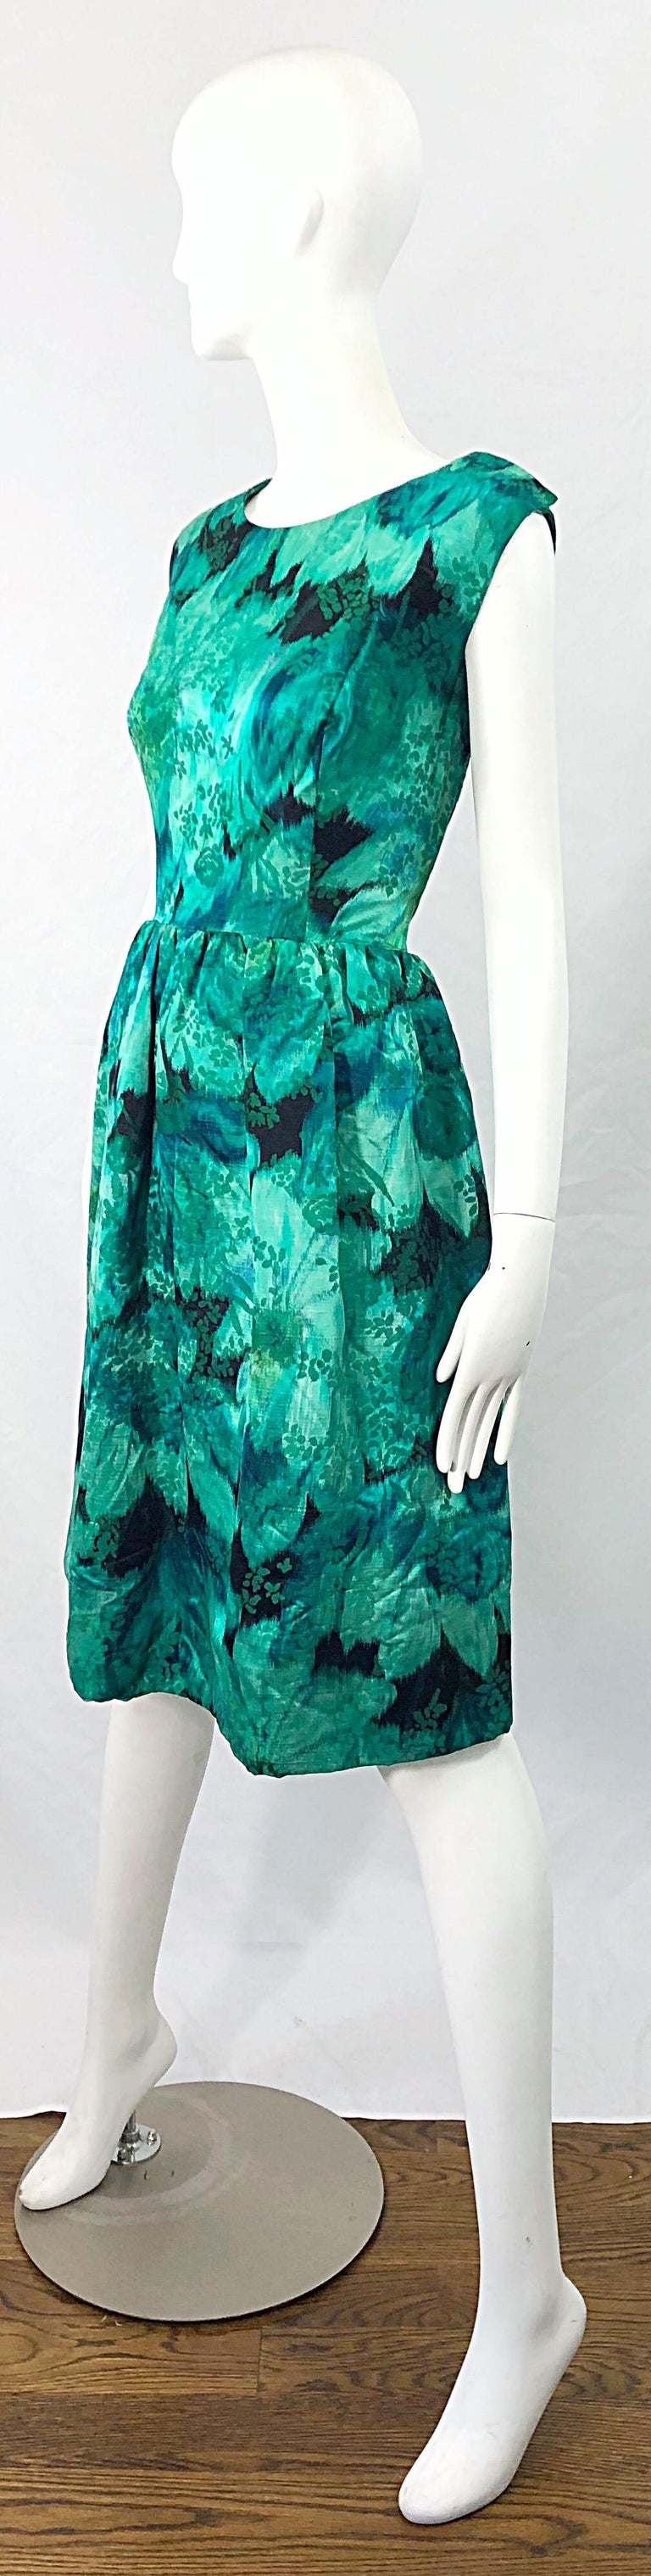 1950s Demi Couture Green Botanical Floral Silk Fit n' Flare Vintage 50s Dress For Sale 5